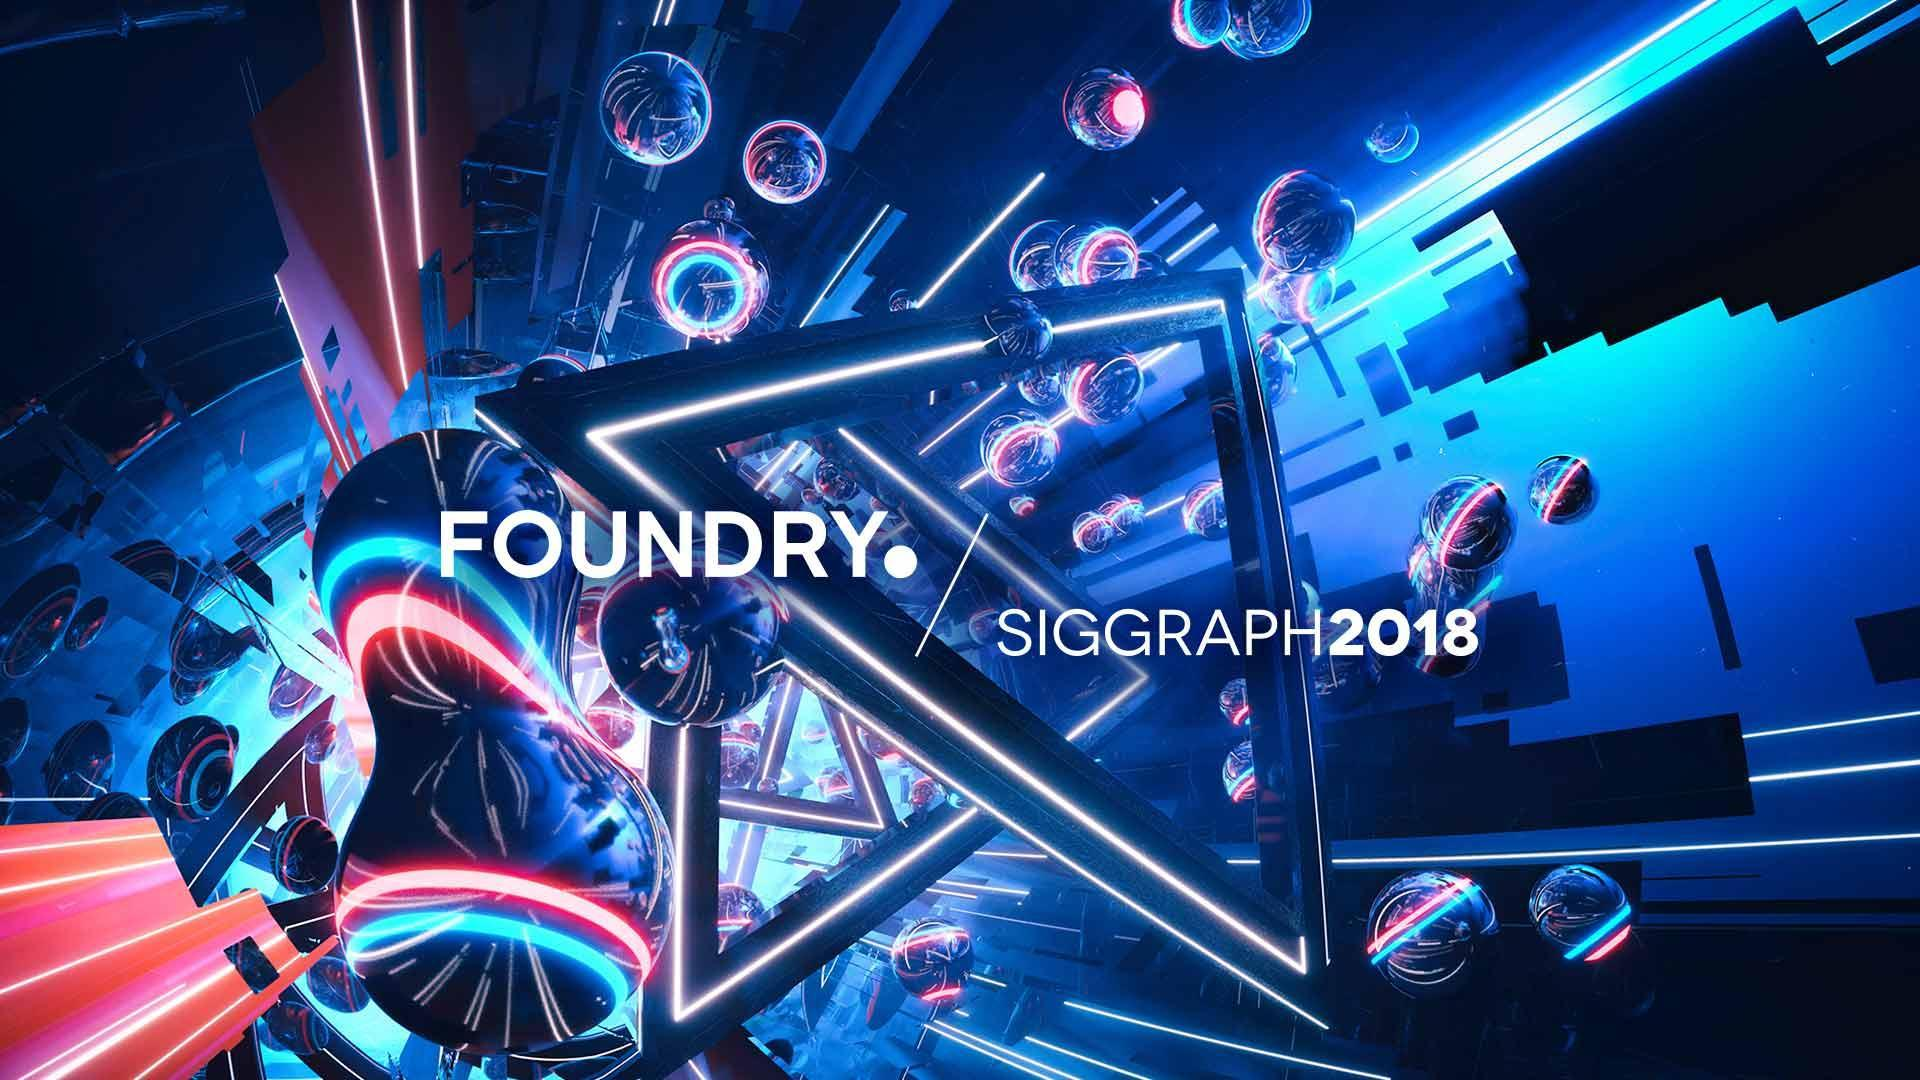 Foundry at Siggraph